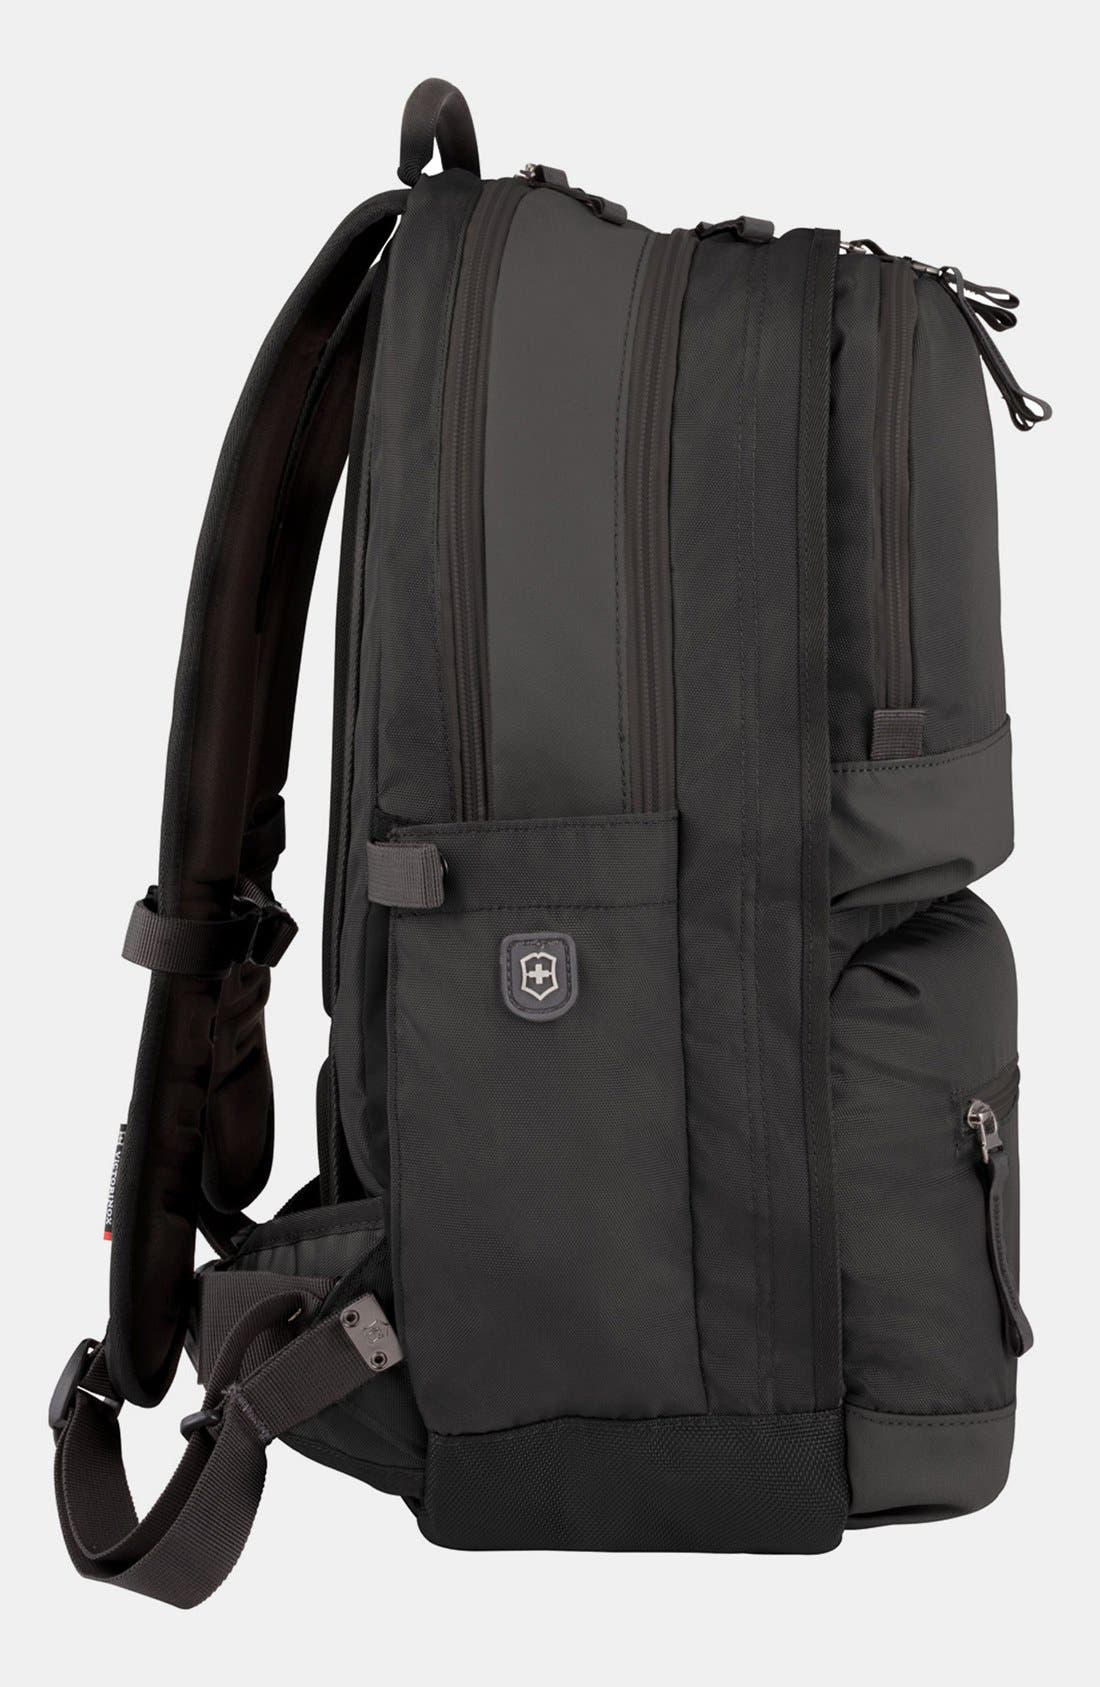 Dual Compartment Backpack,                             Alternate thumbnail 3, color,                             001